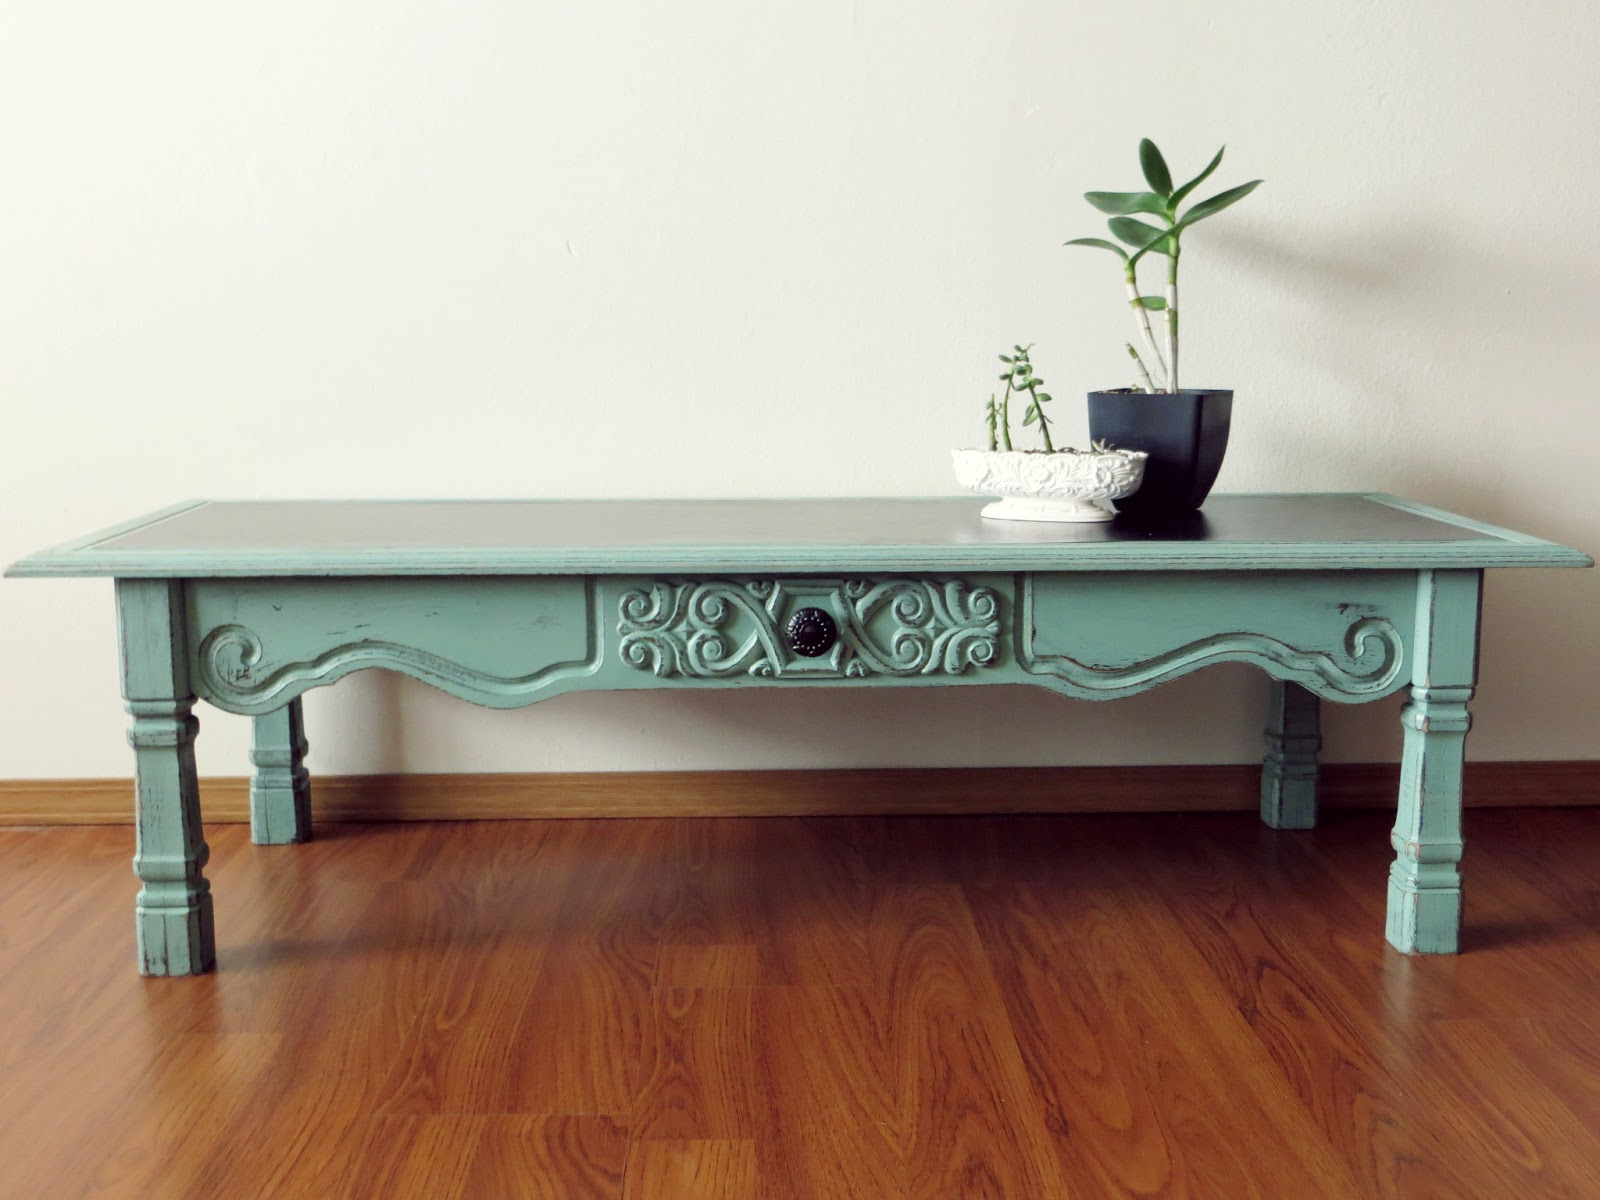 Namely Original Distressed Coffee Table Tutorial